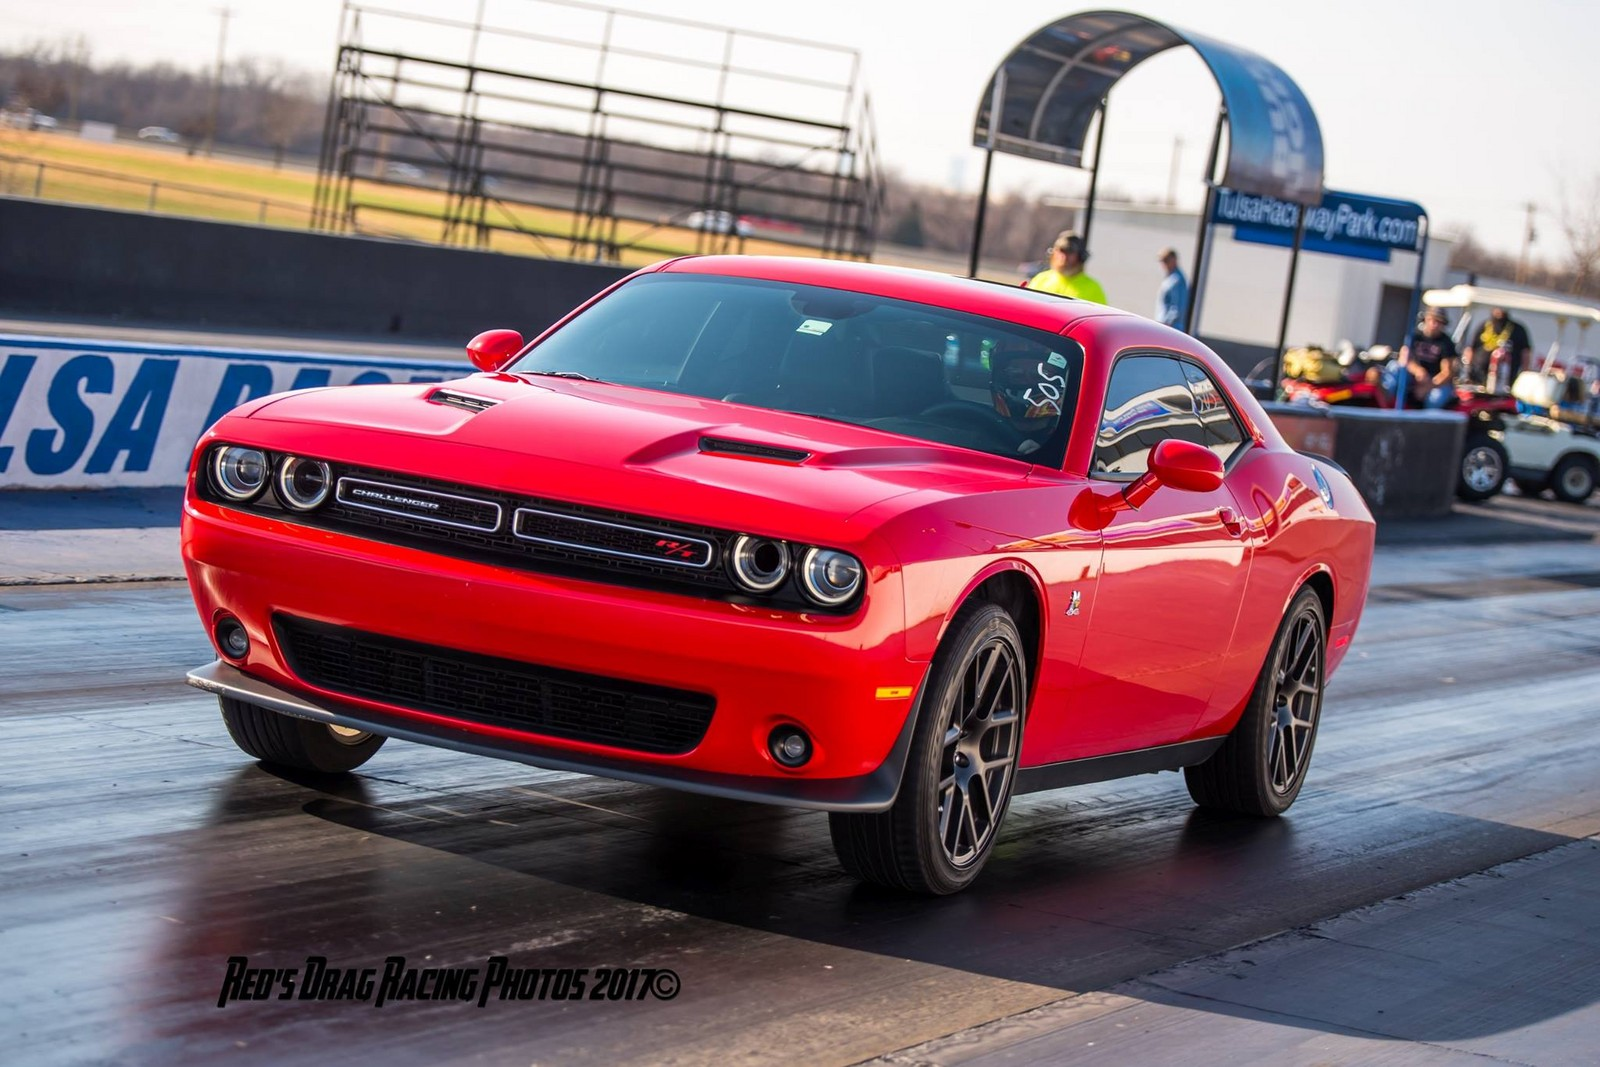 2016 Torred Dodge Challenger 392 scat pack picture, mods, upgrades